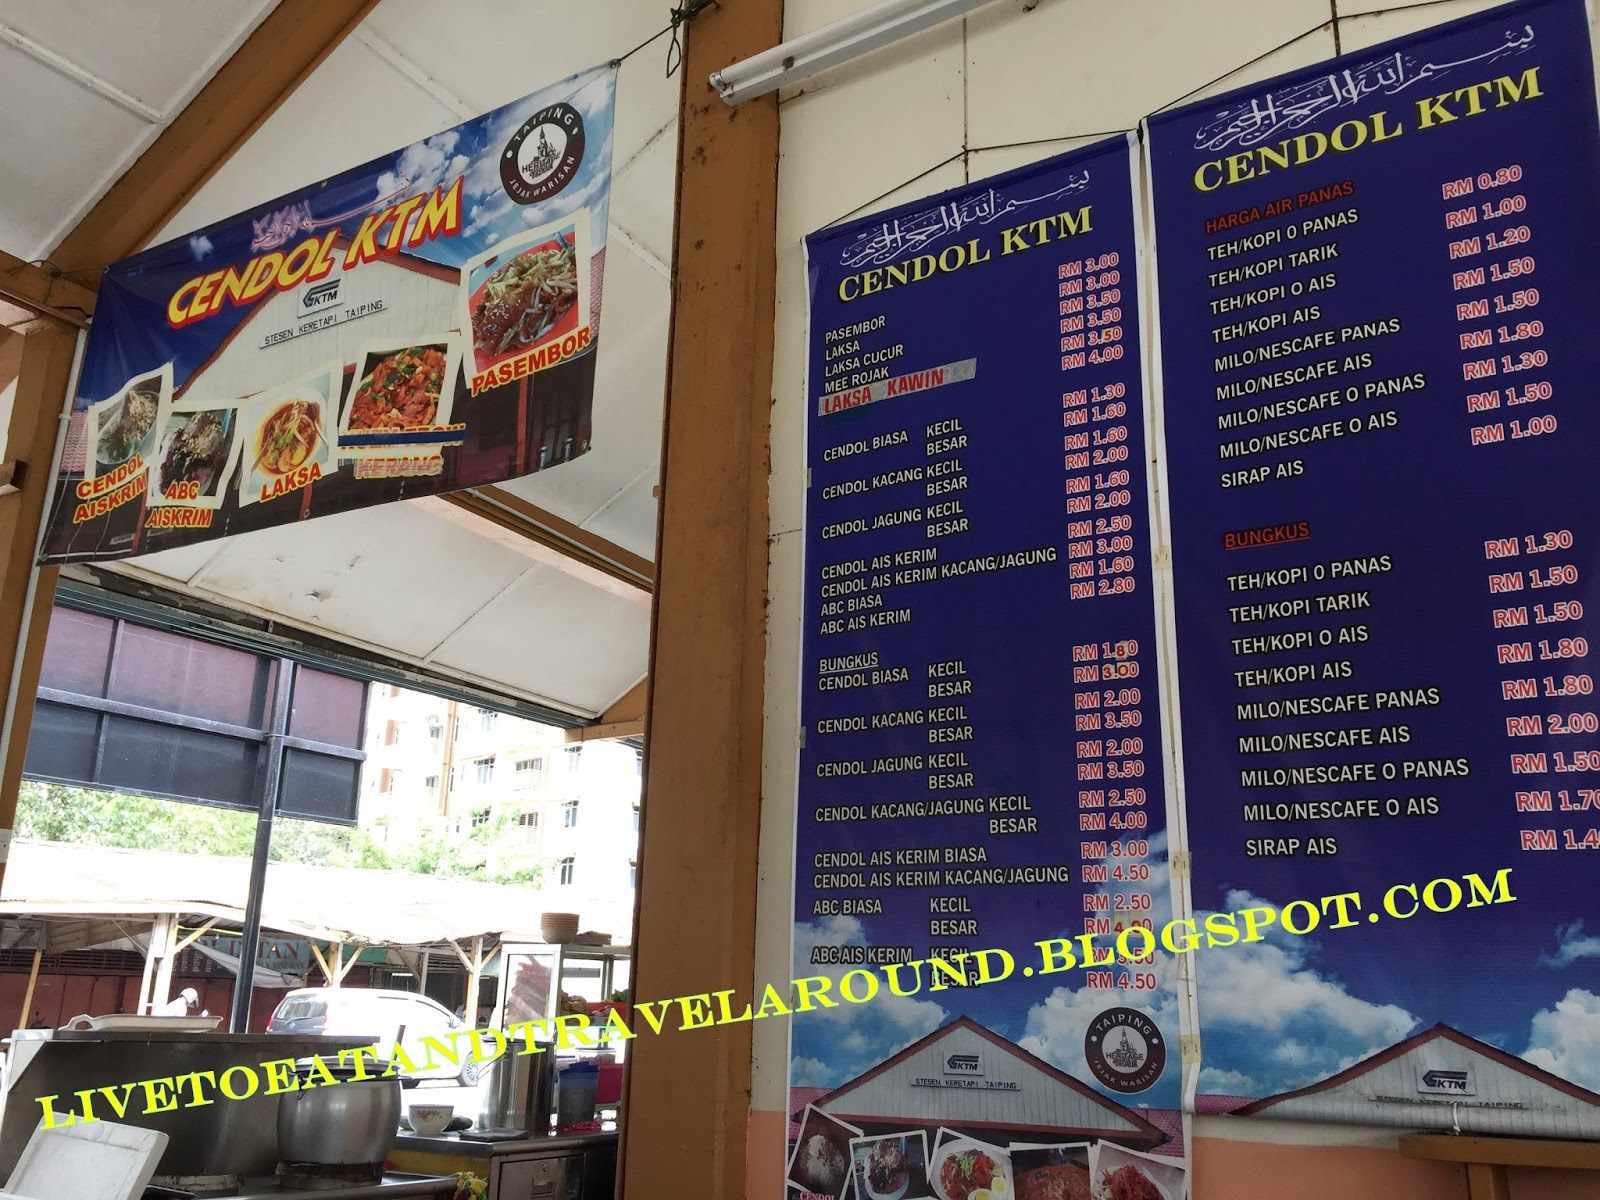 A Collection Of Memories Taiping Cendol Ktm Abc White Coffee 1 Bungkus